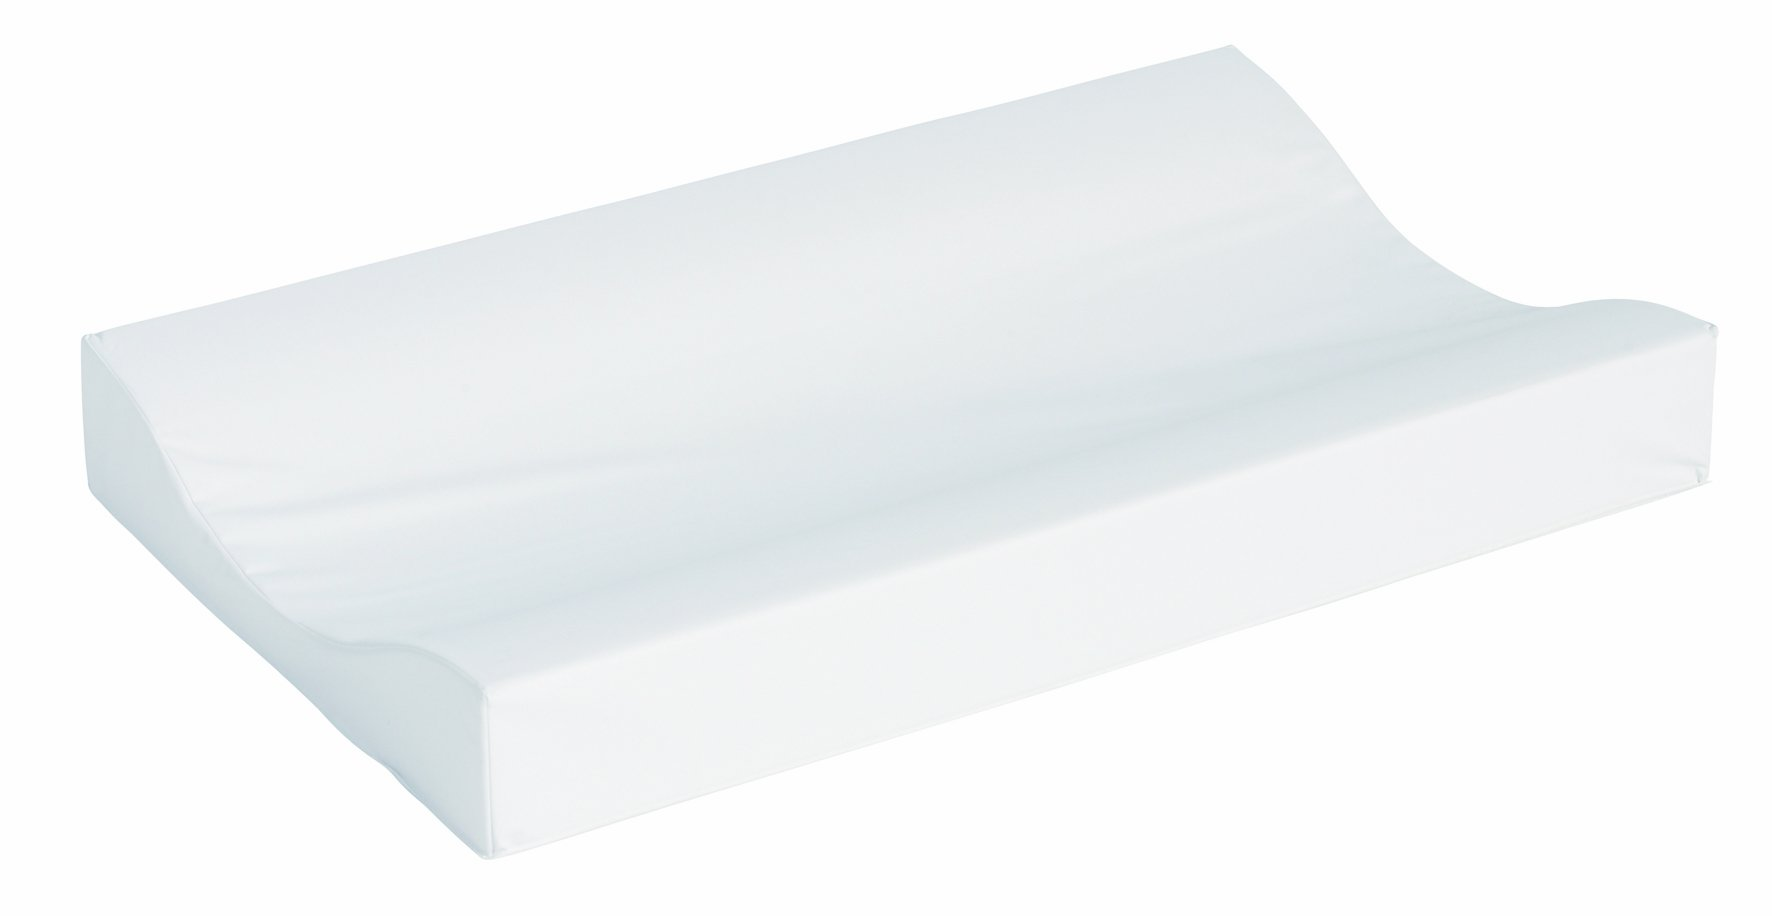 Bébé-Jou 480001 - Cambiador plastificado, 72 x 44 cm, color blanco product